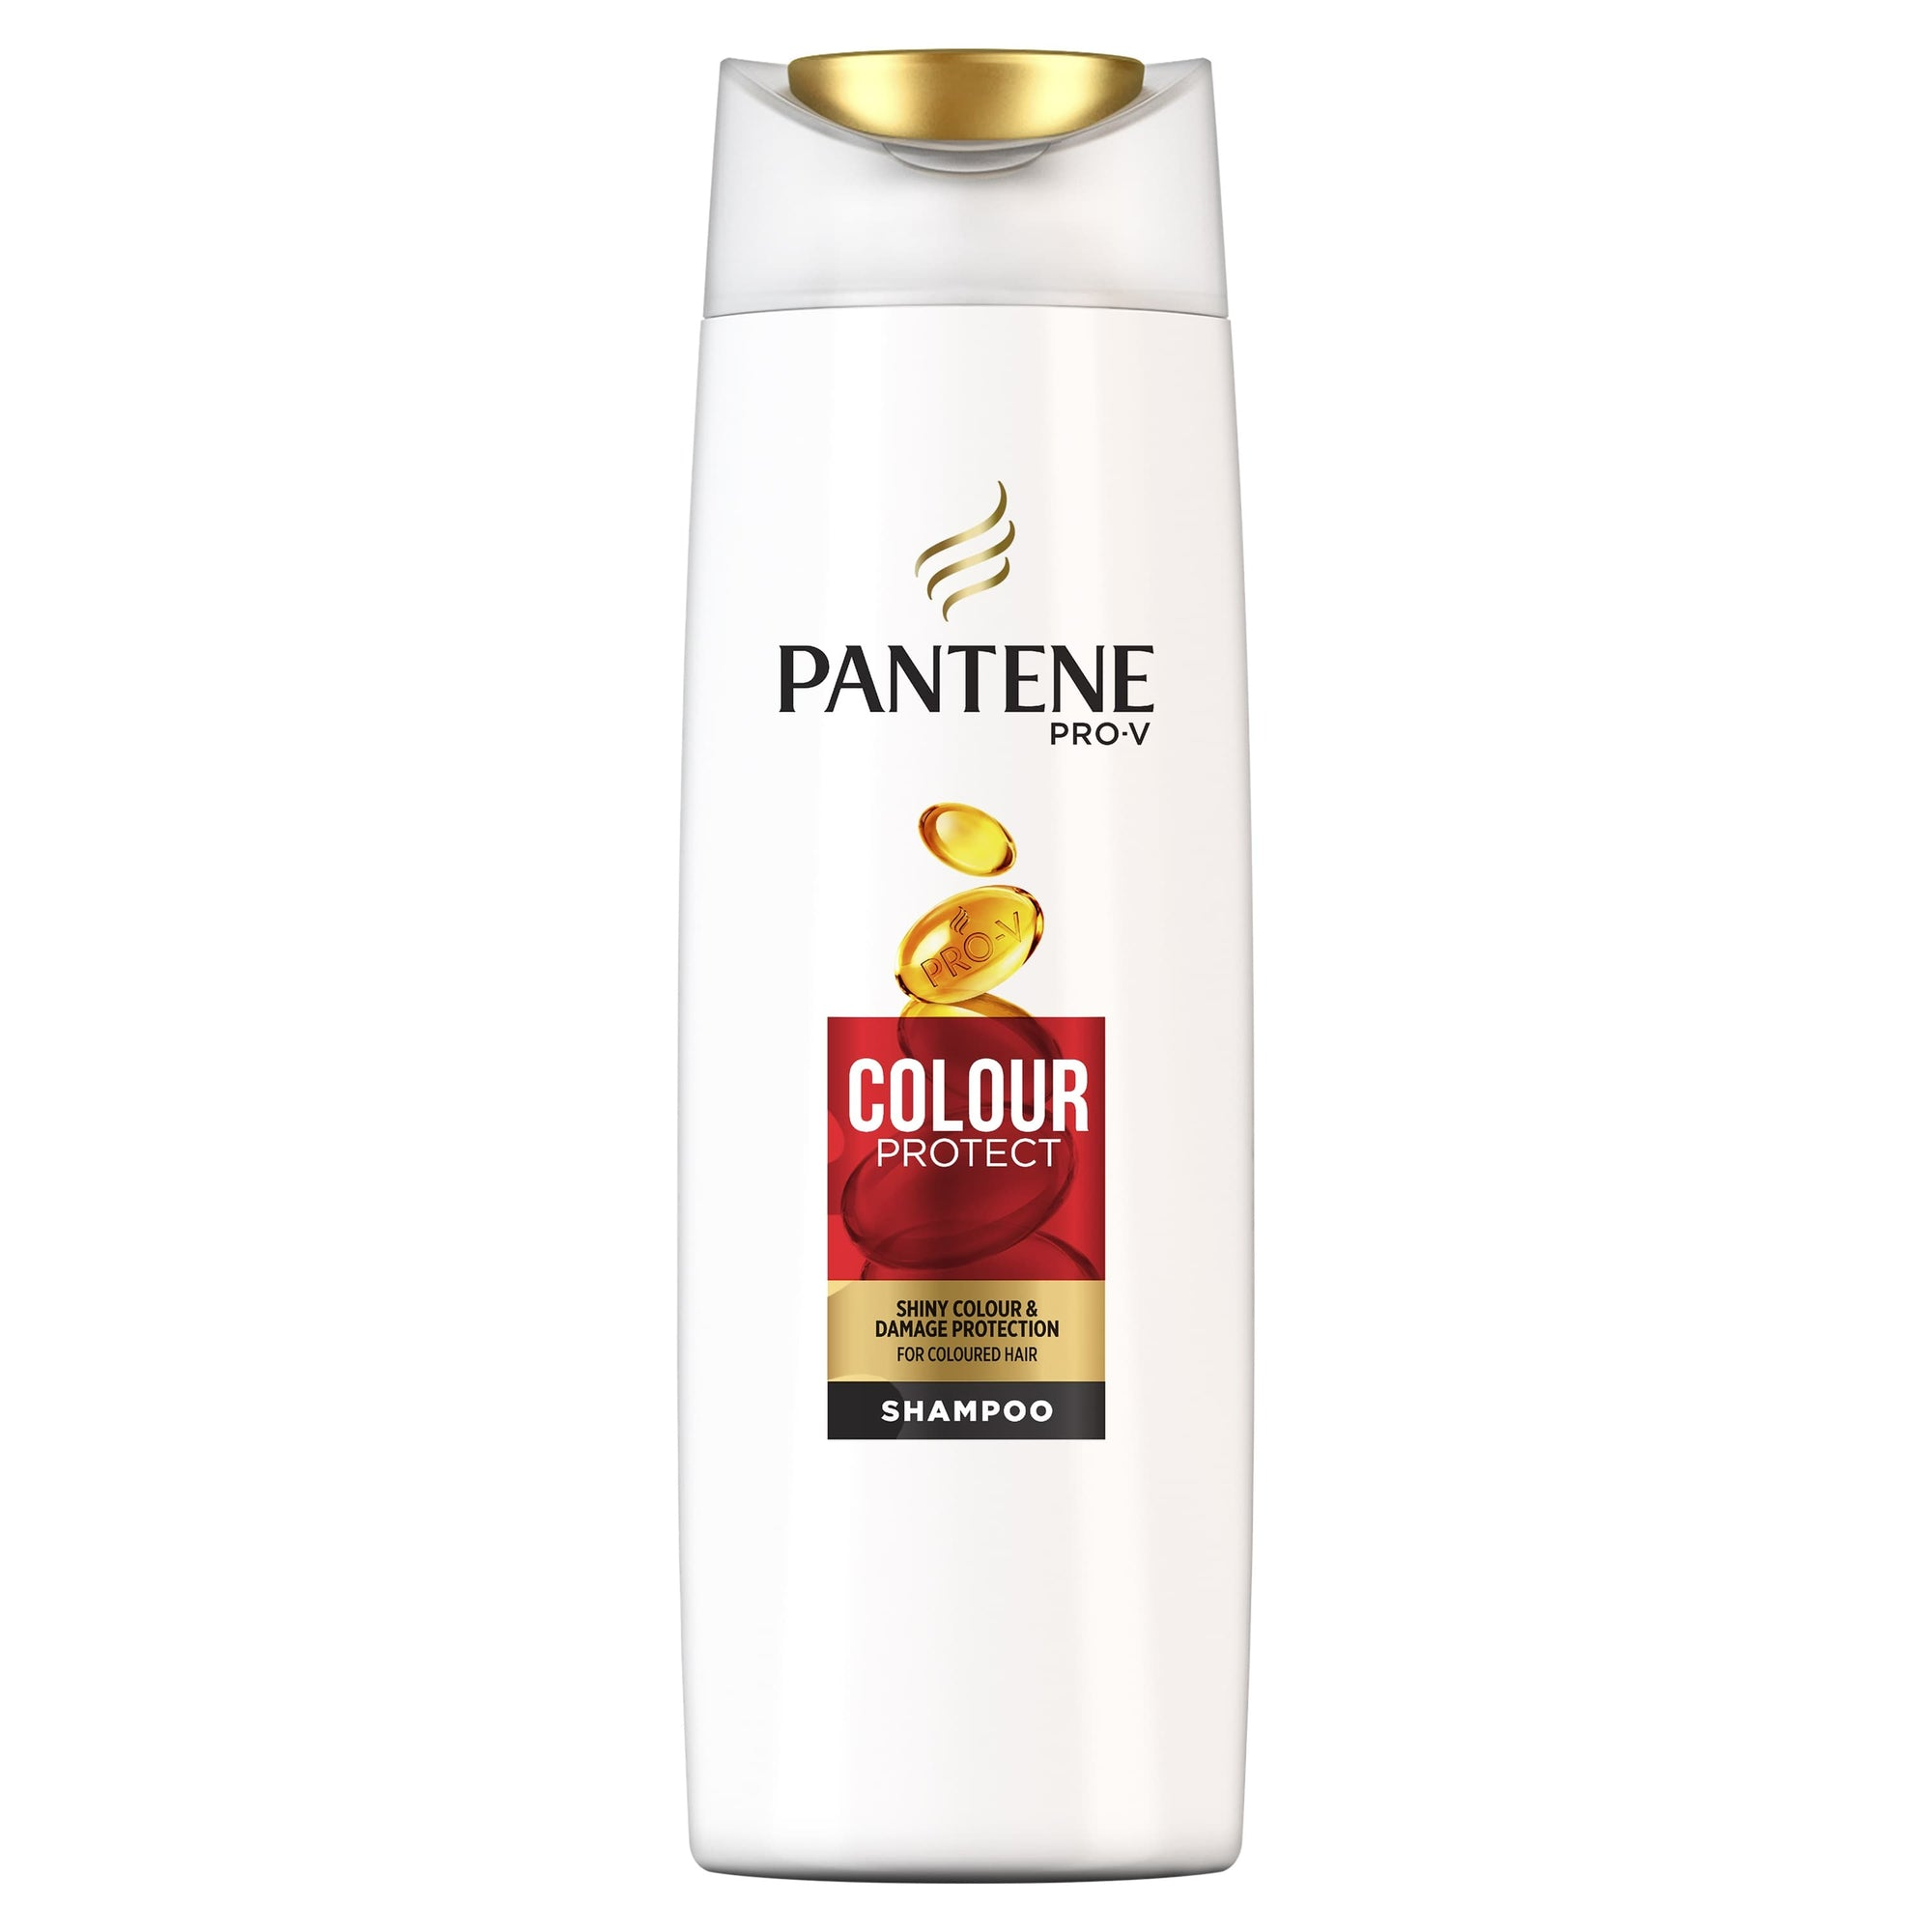 Pantene Colour Protect Shampoo 360ML